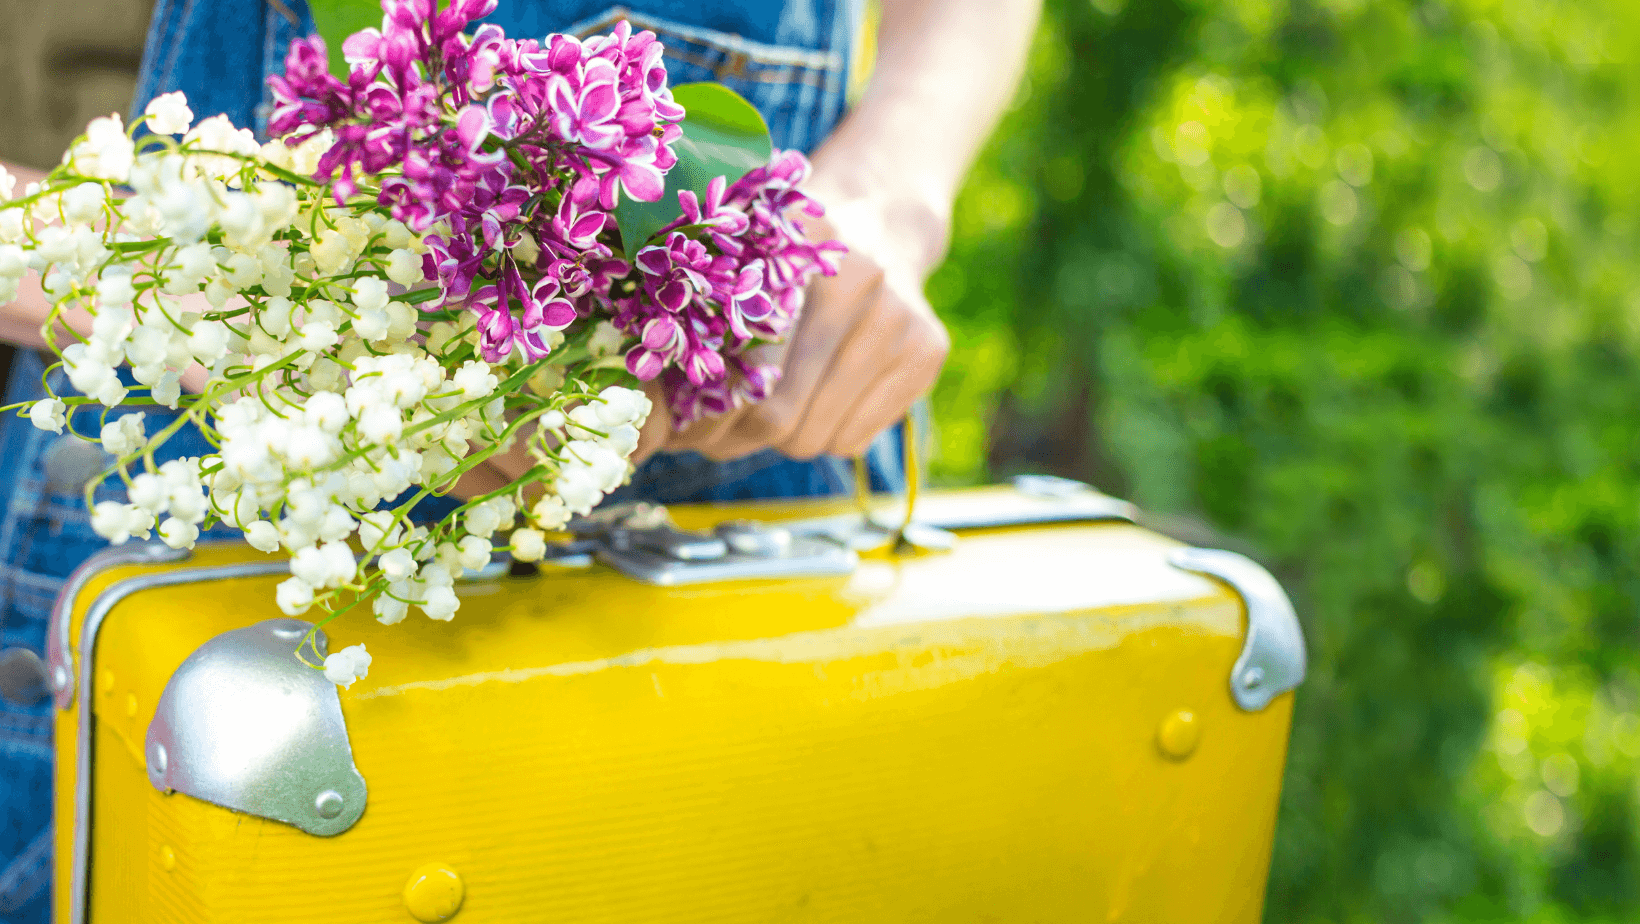 person carrying a yellow suitcase while holding spring flowers